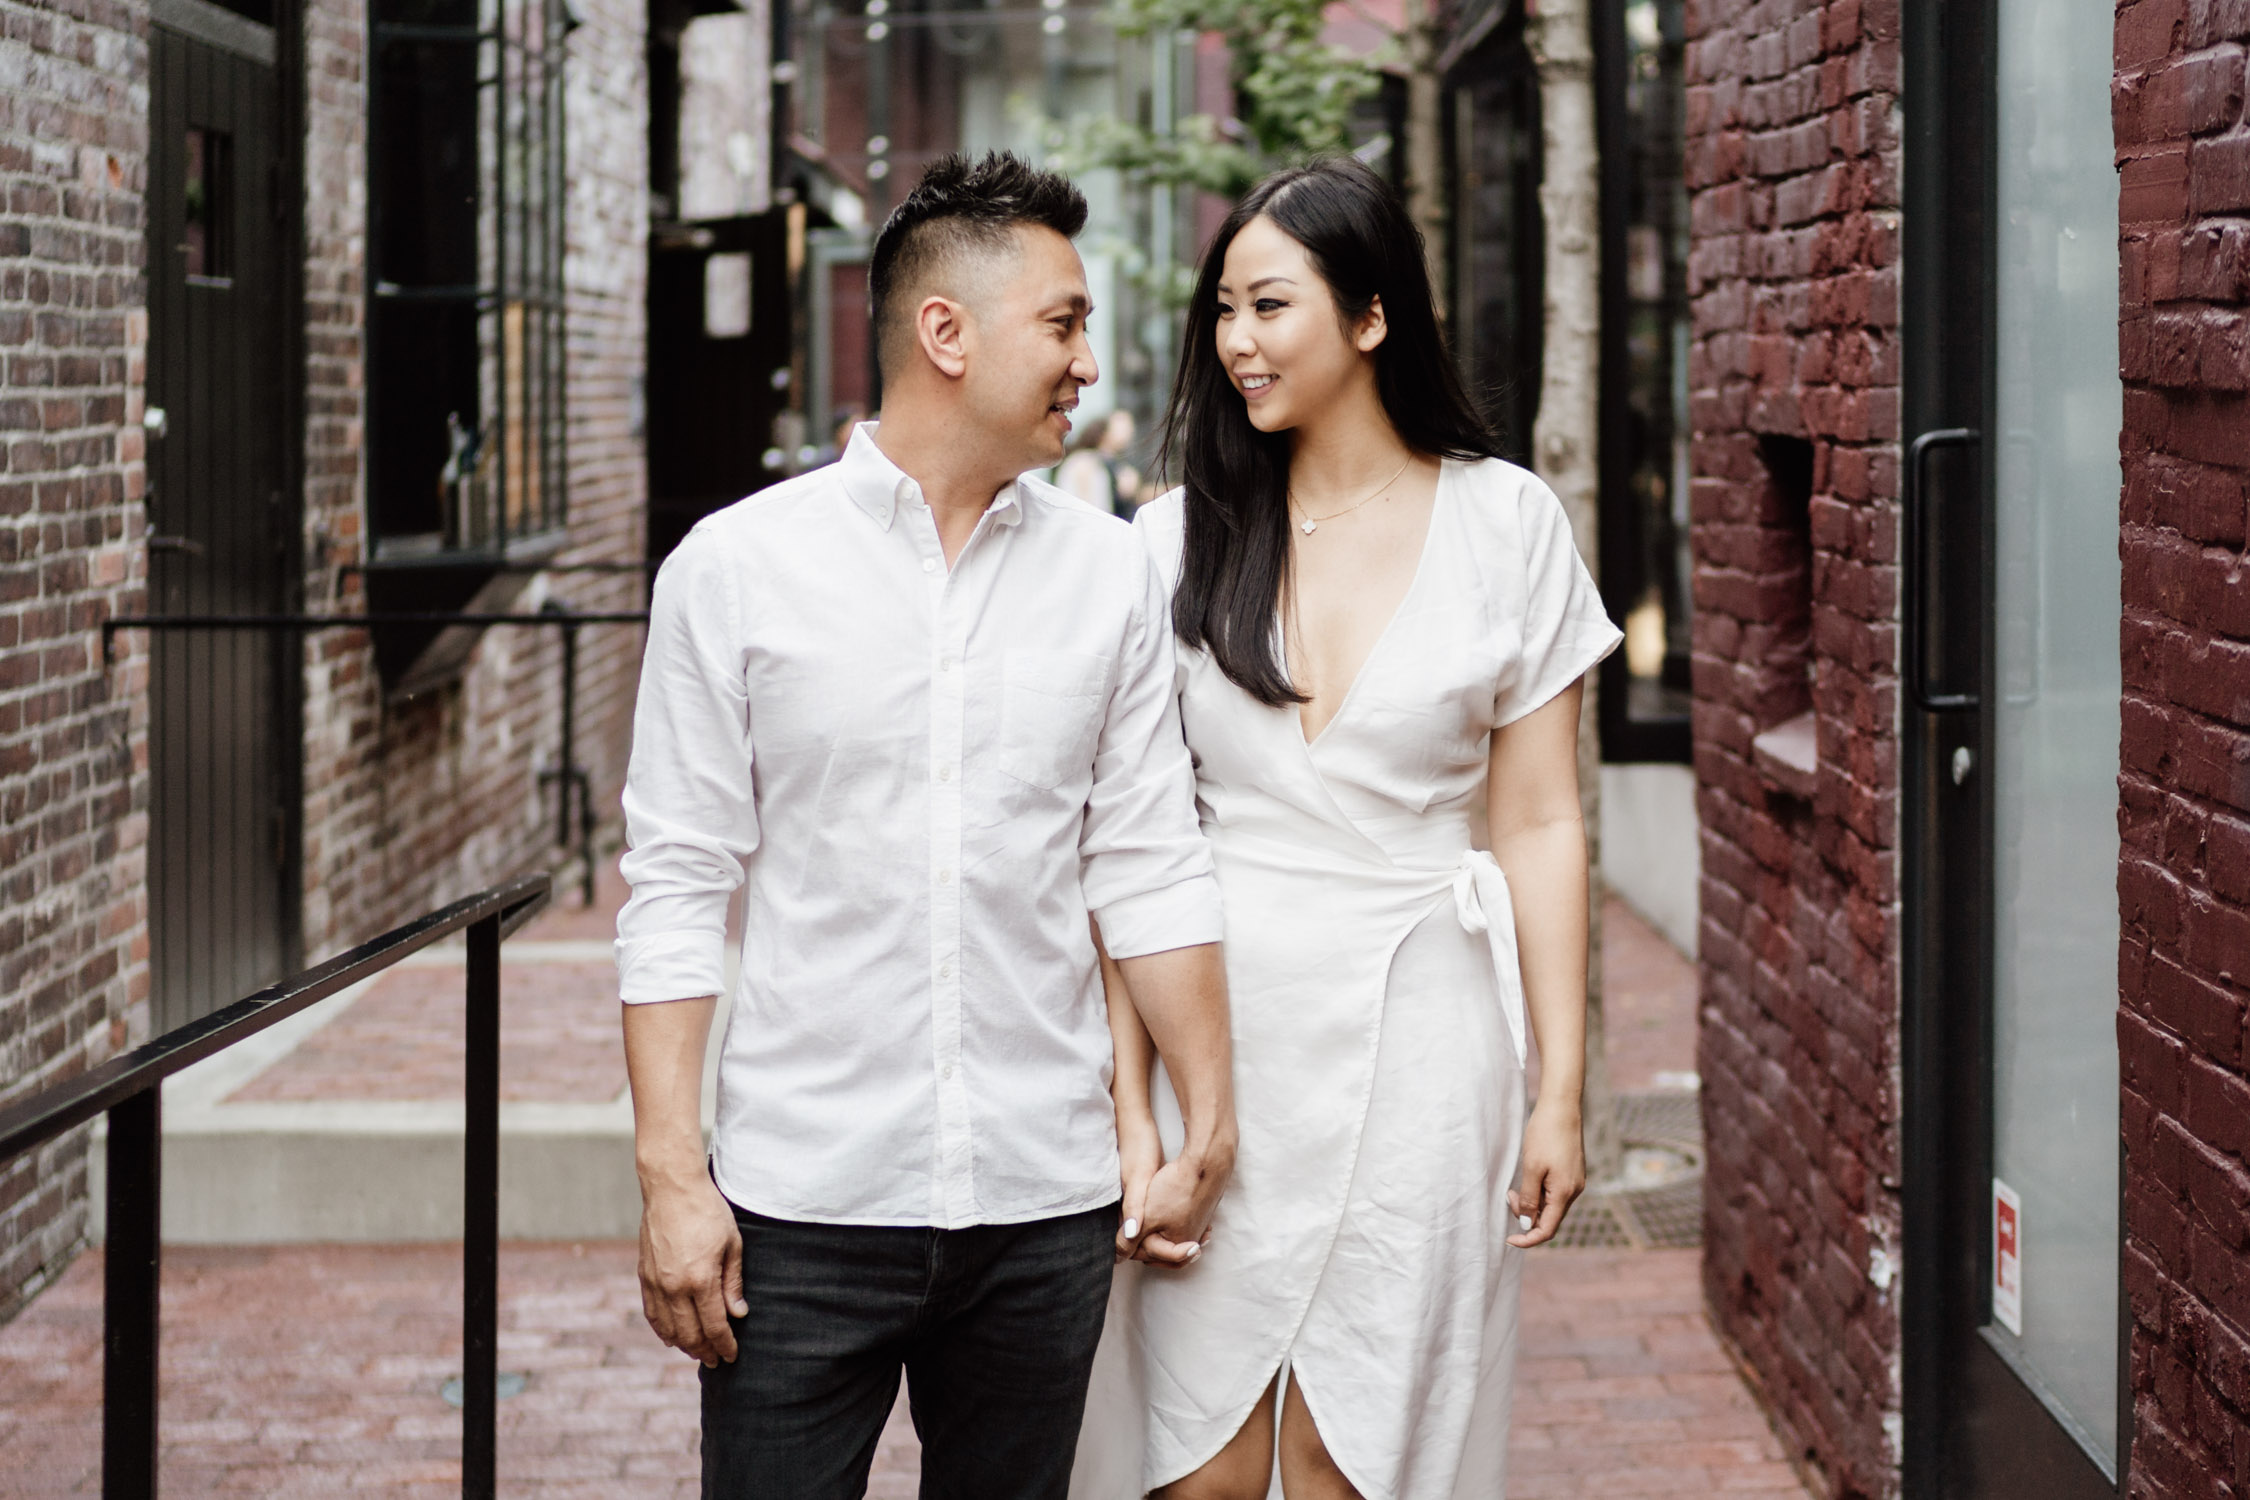 gastown engagement photography during golden hour in the summer located in vancouver bc canada